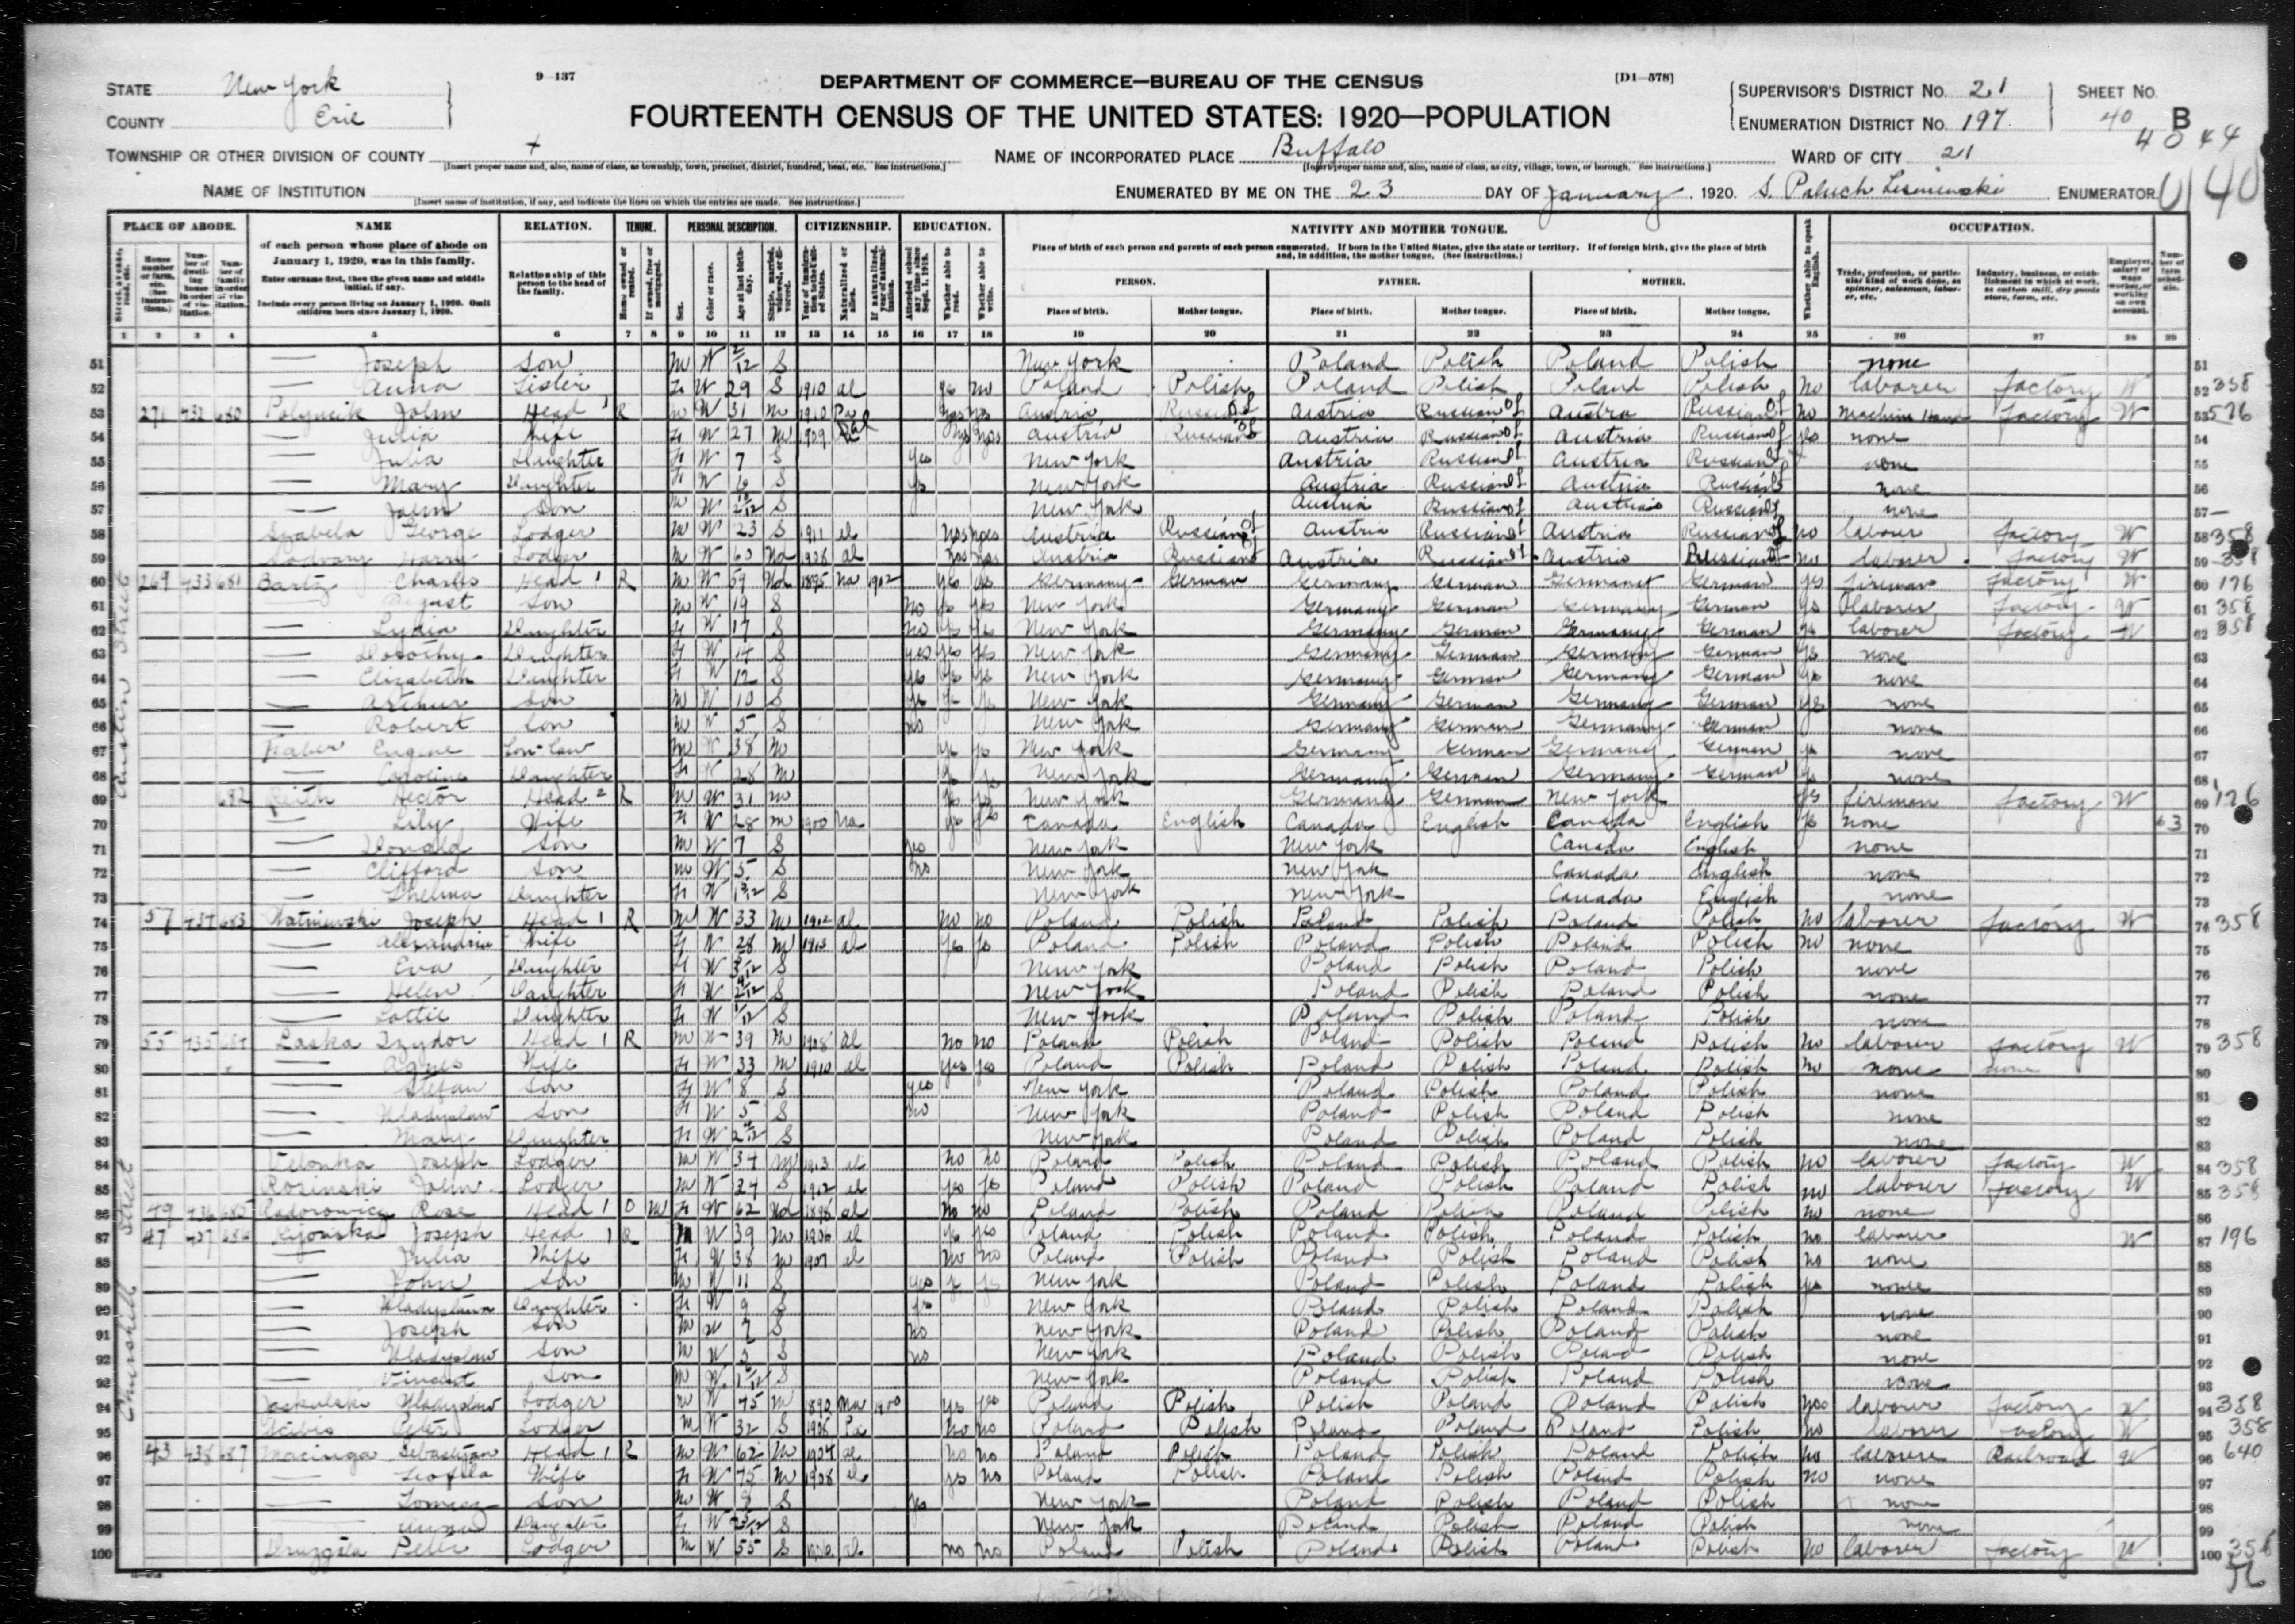 New York: ERIE County, Enumeration District 197, Sheet No. 40B